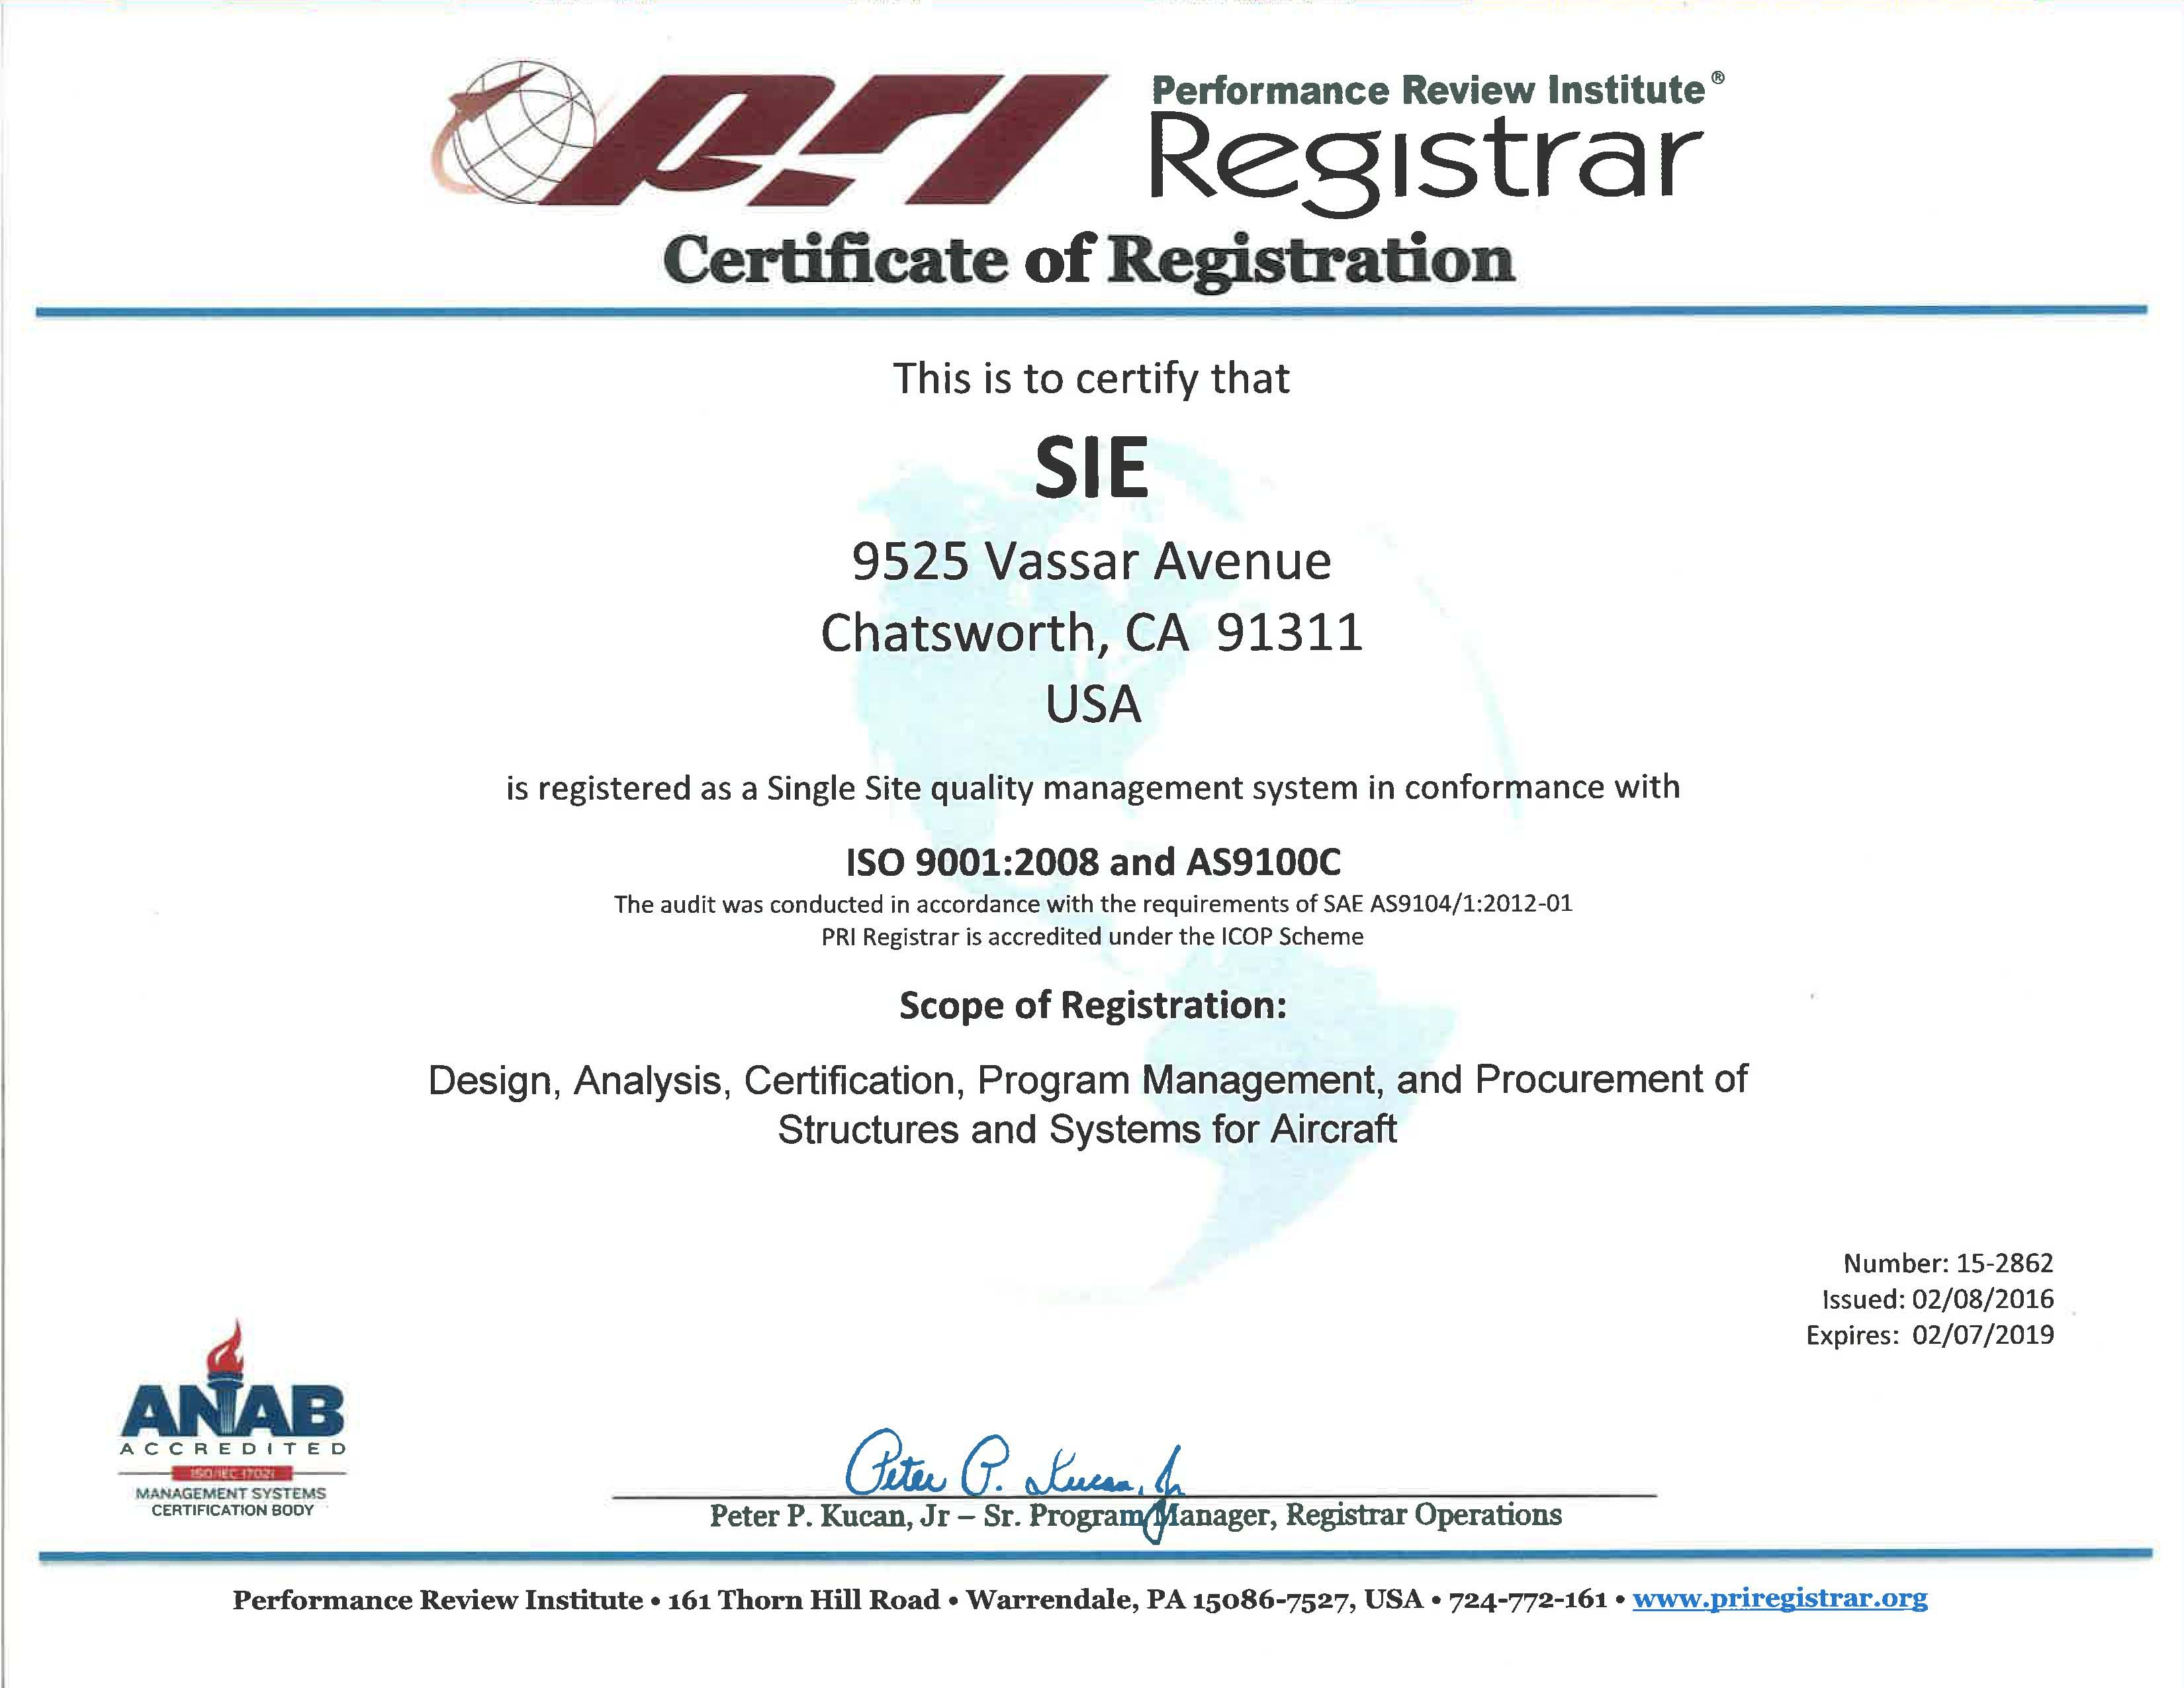 Image of image of the AS9100 Certificate